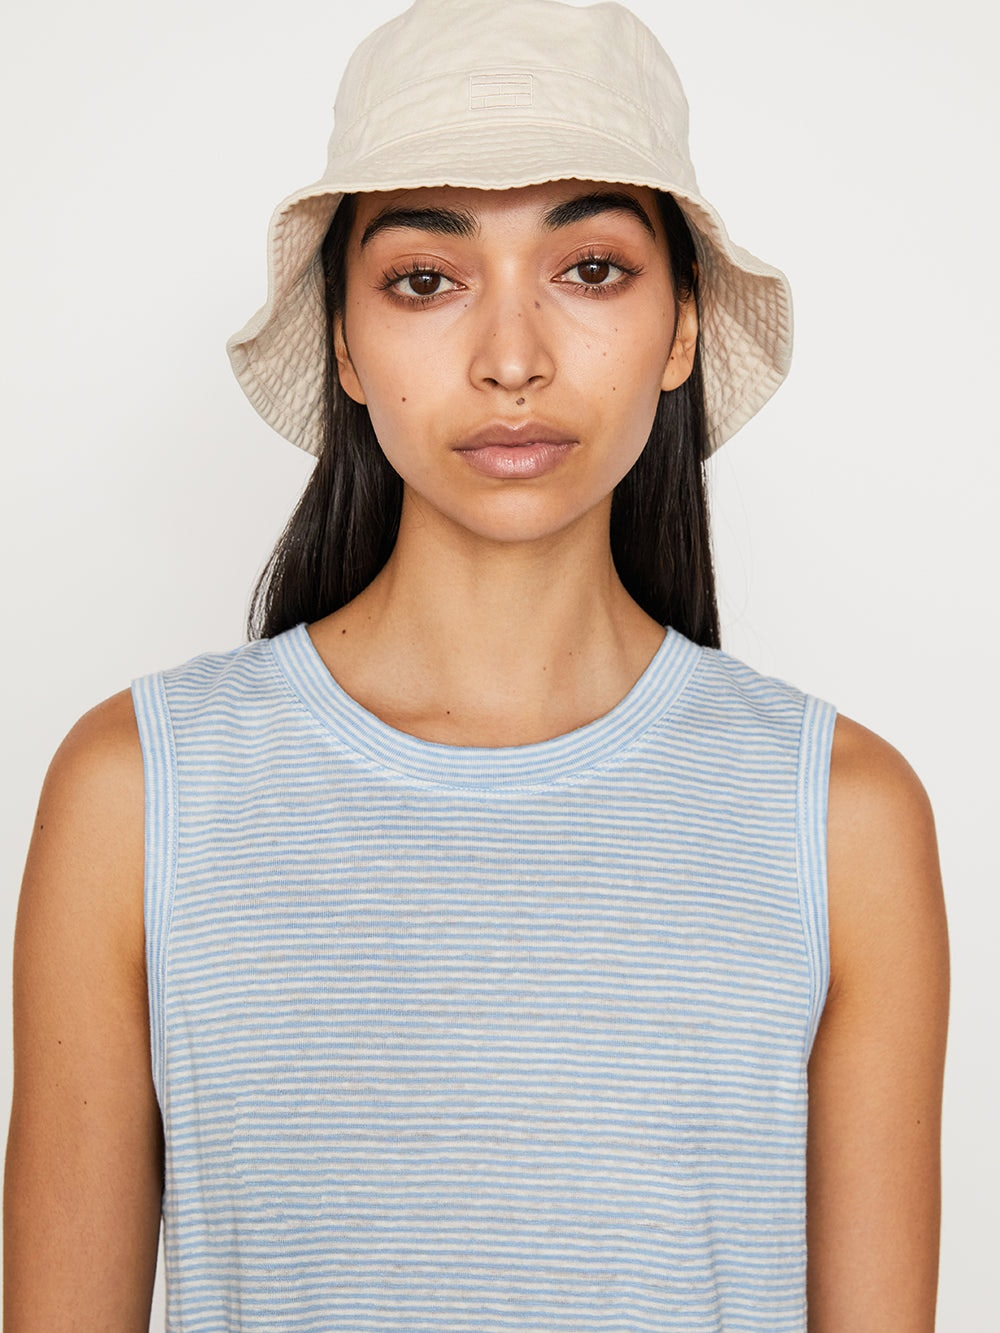 hat front view